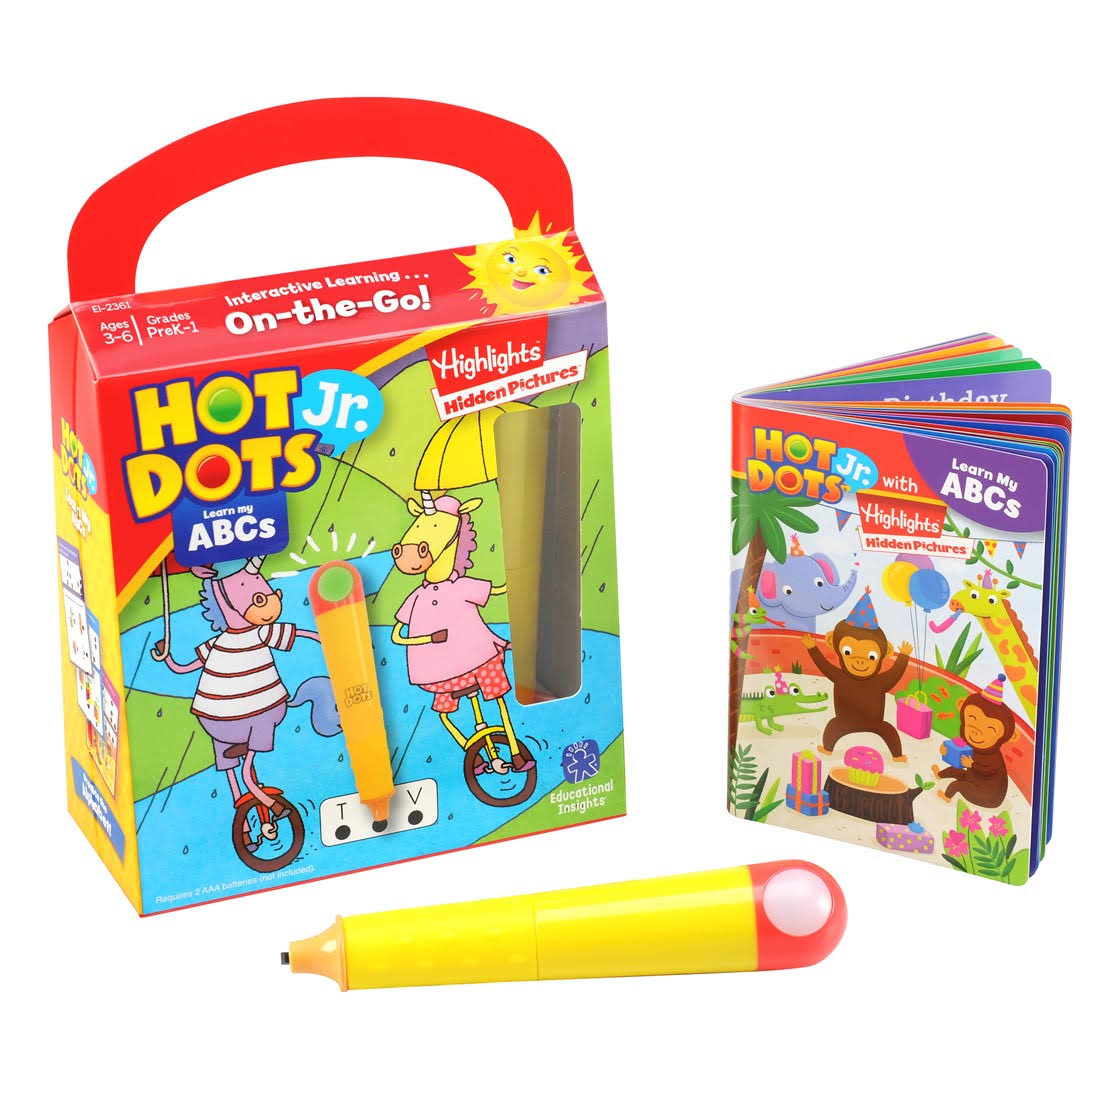 Hot Dots Jr. with Highlights On-The-Go! Learn My ABCs